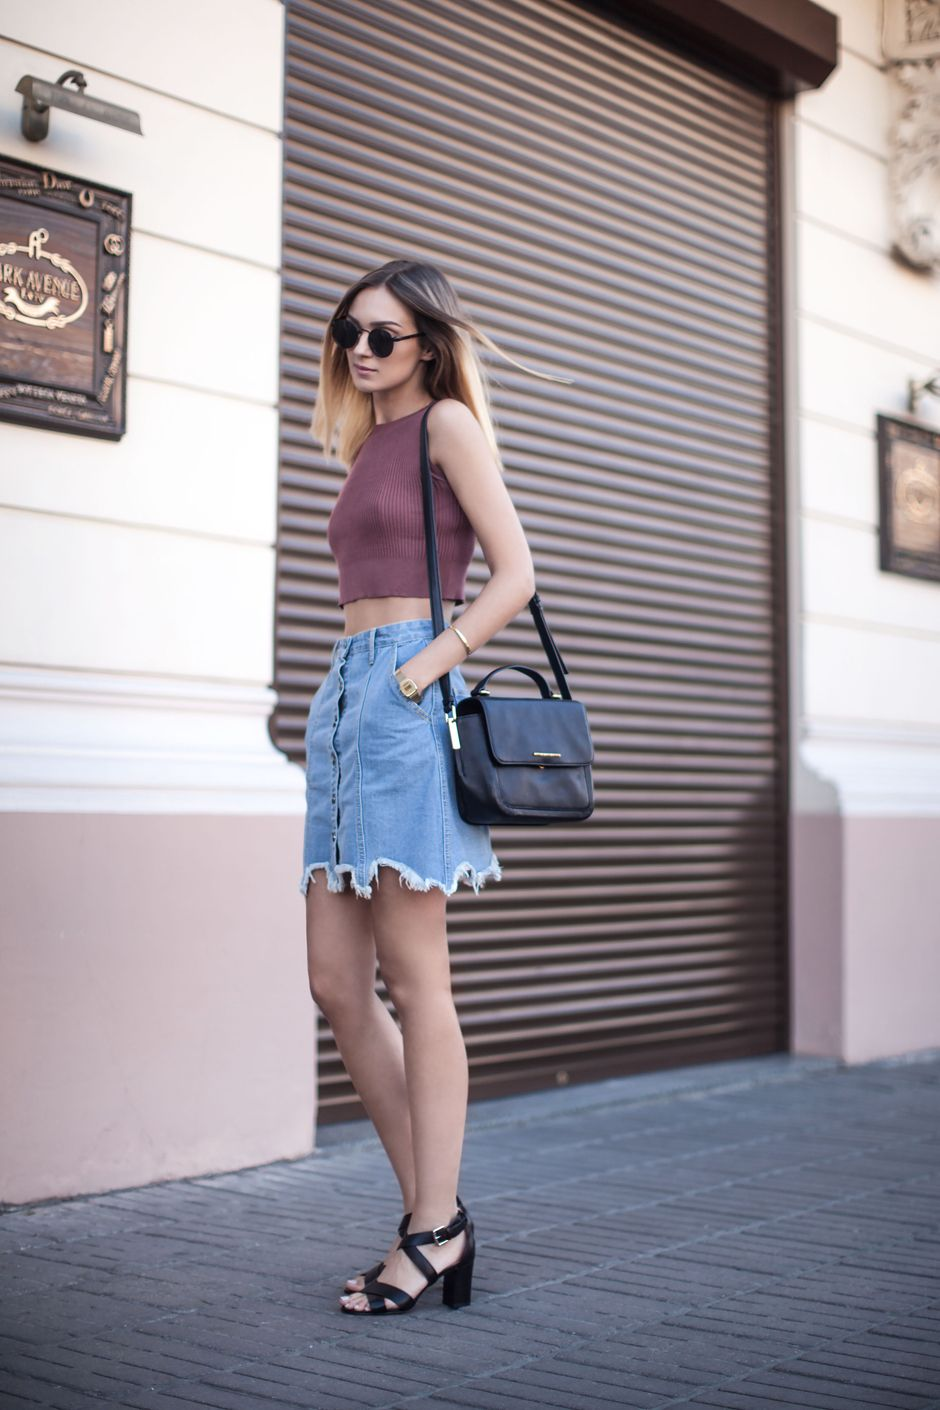 Denim Skirts Outfit Ideas